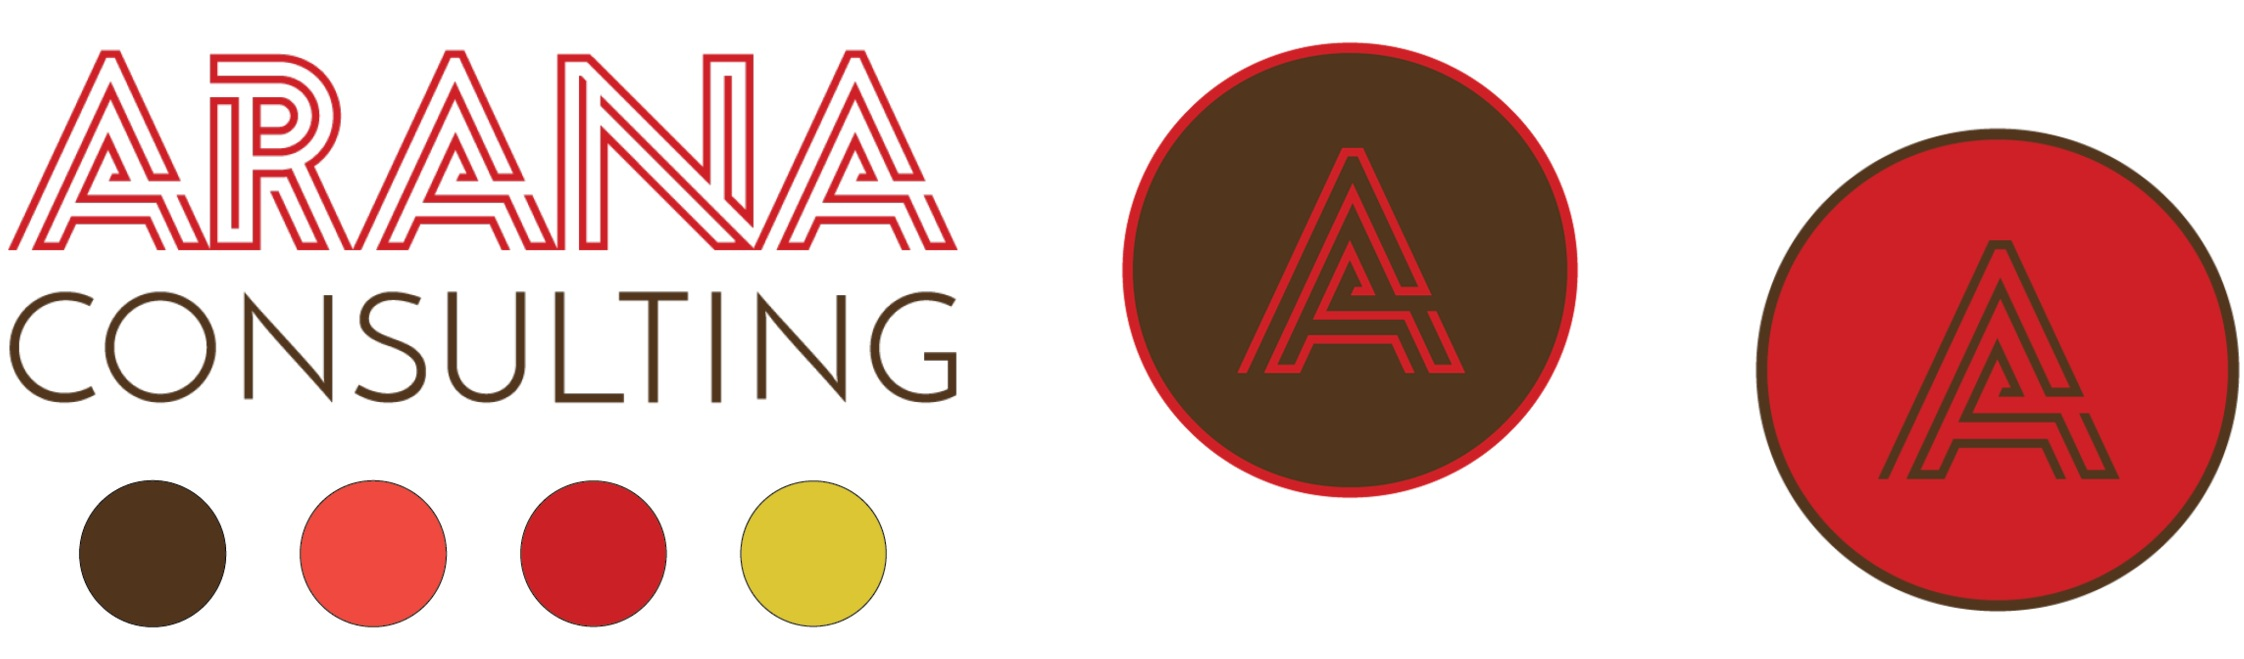 Arana Consulting branding sample